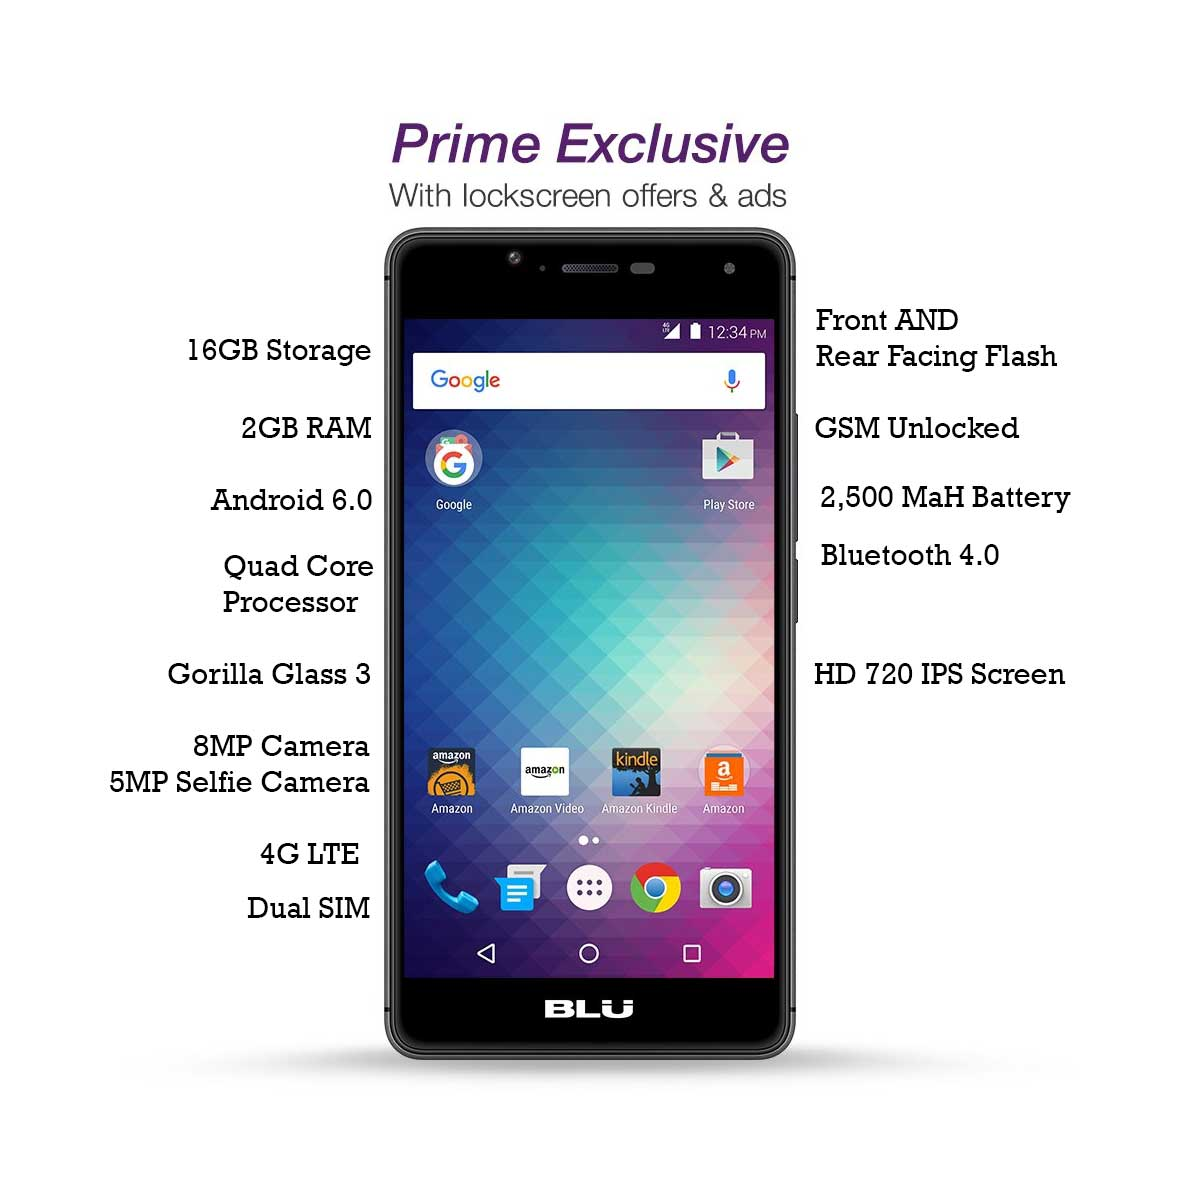 Amazon Offers Blu R1 HD Android 6 Phone for $50!